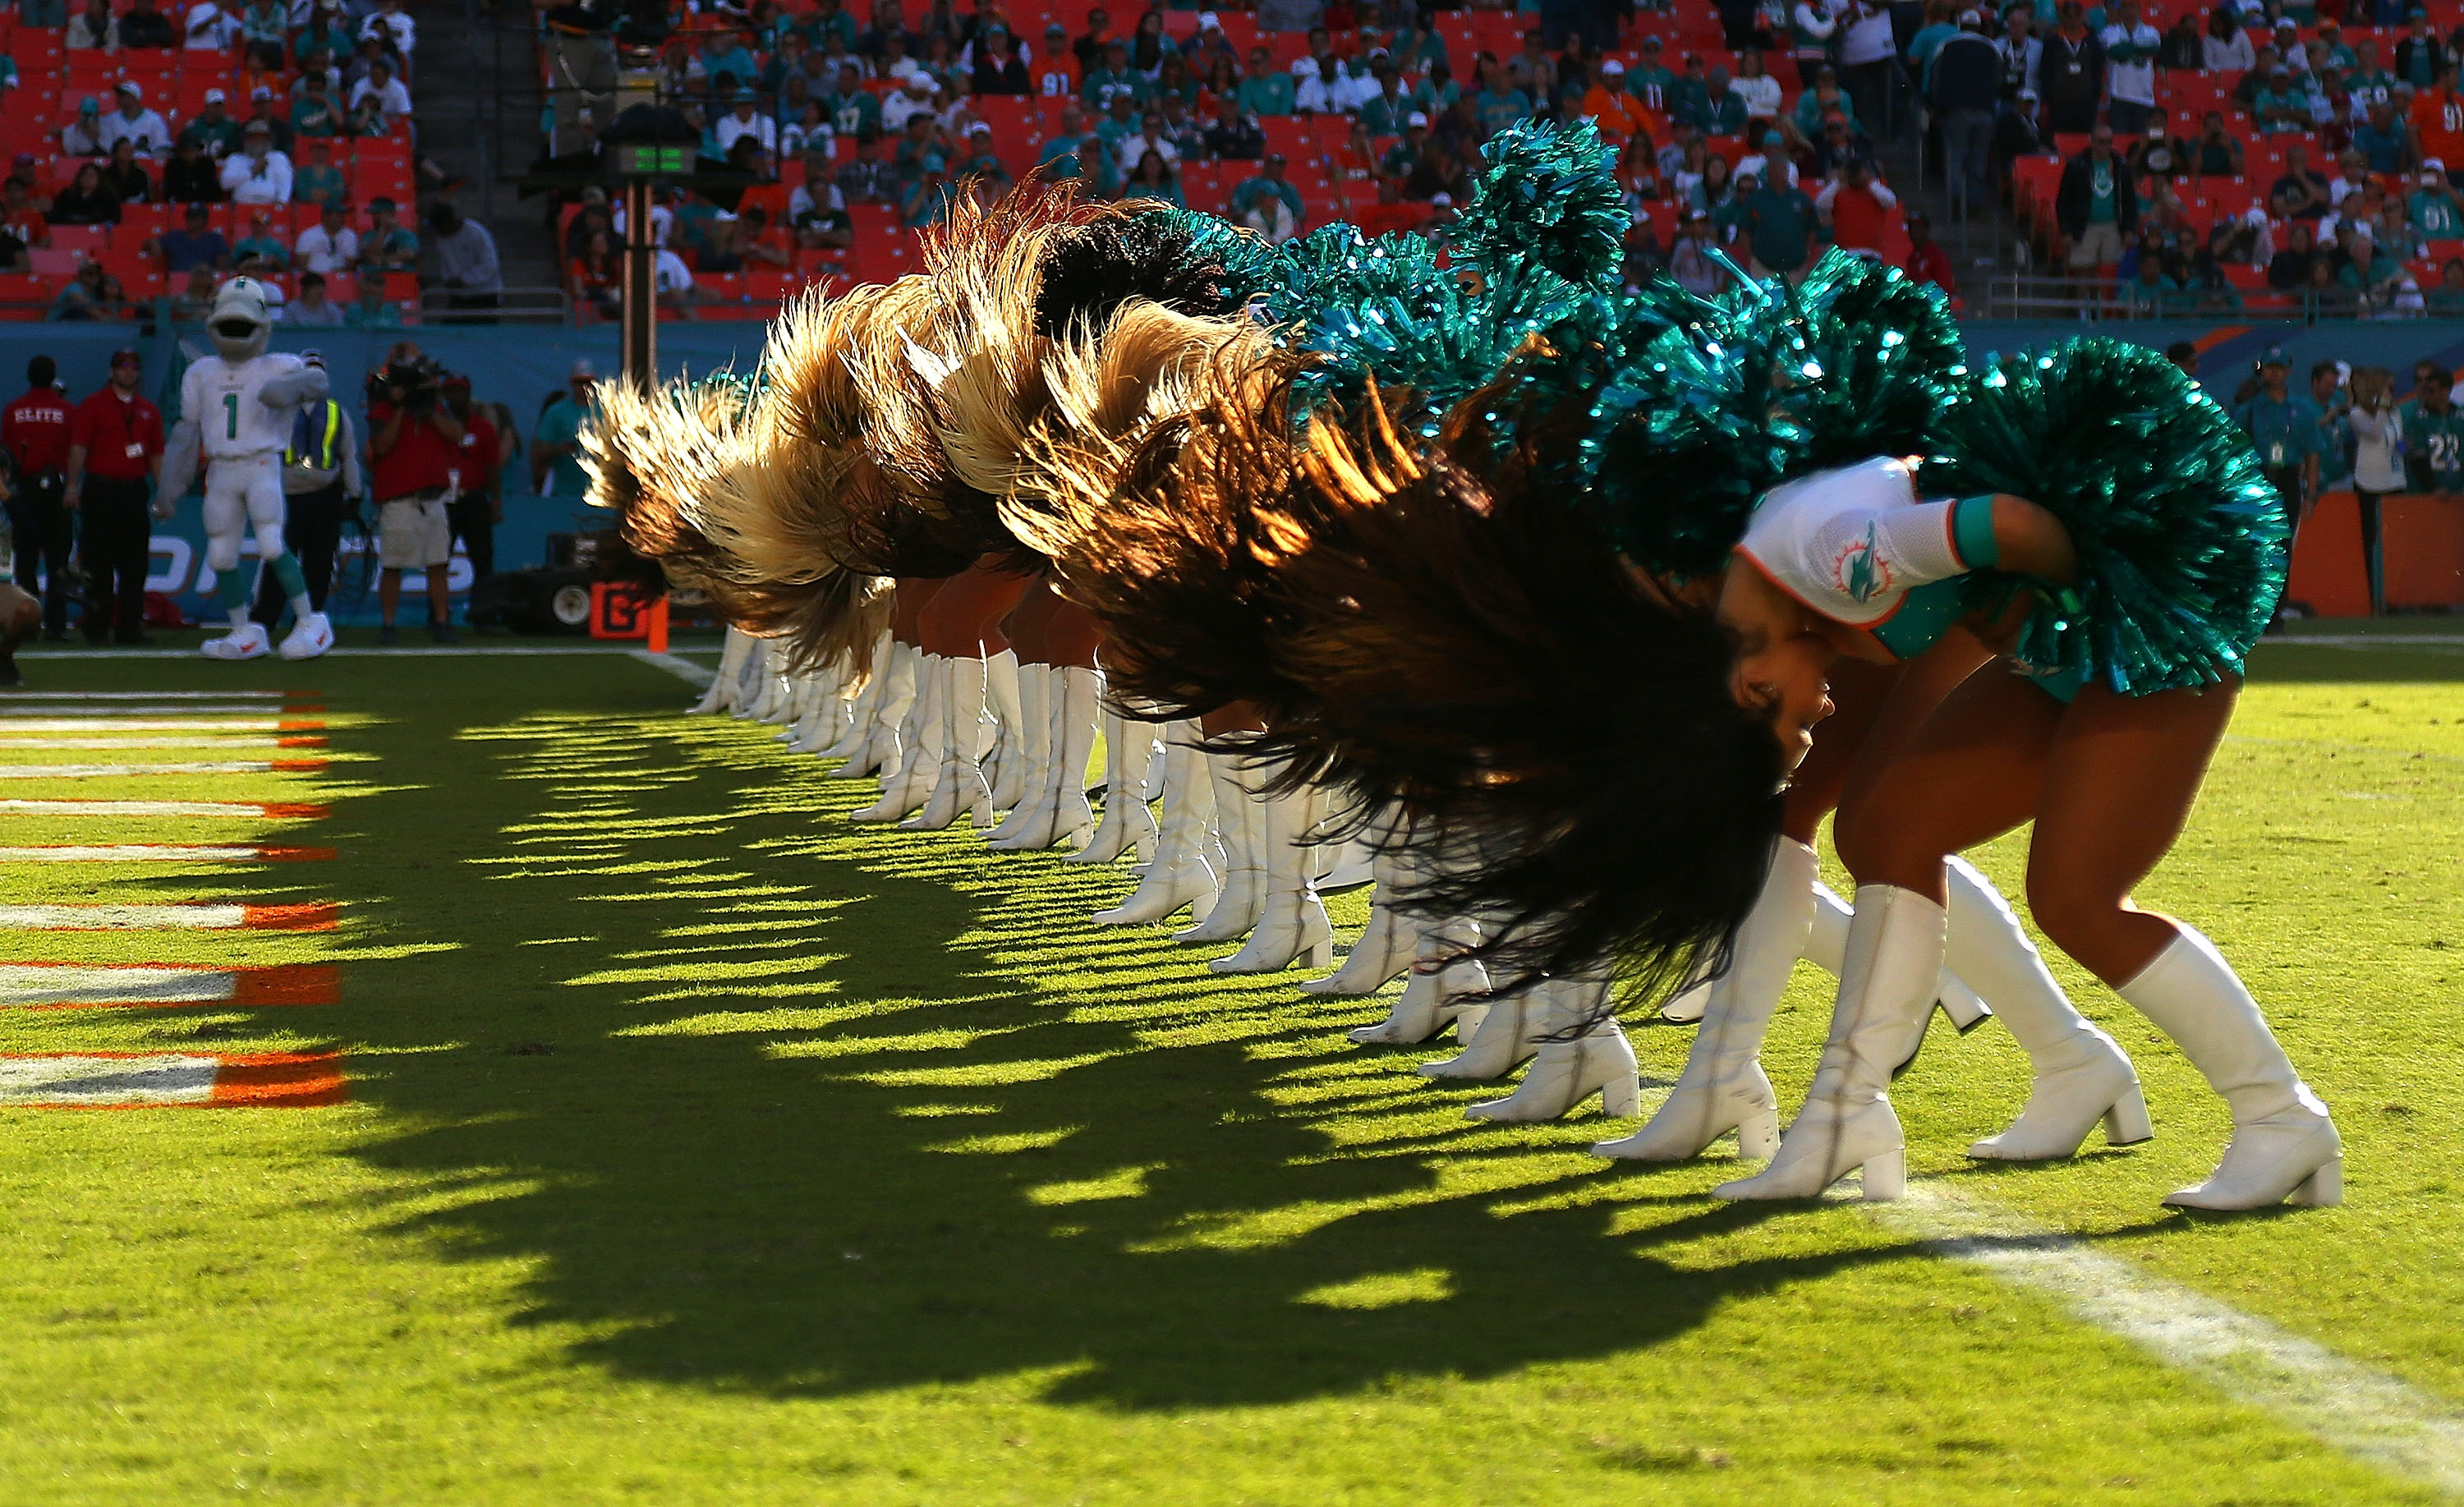 458293480-san-diego-chargers-v-miami-dolphins.jpg